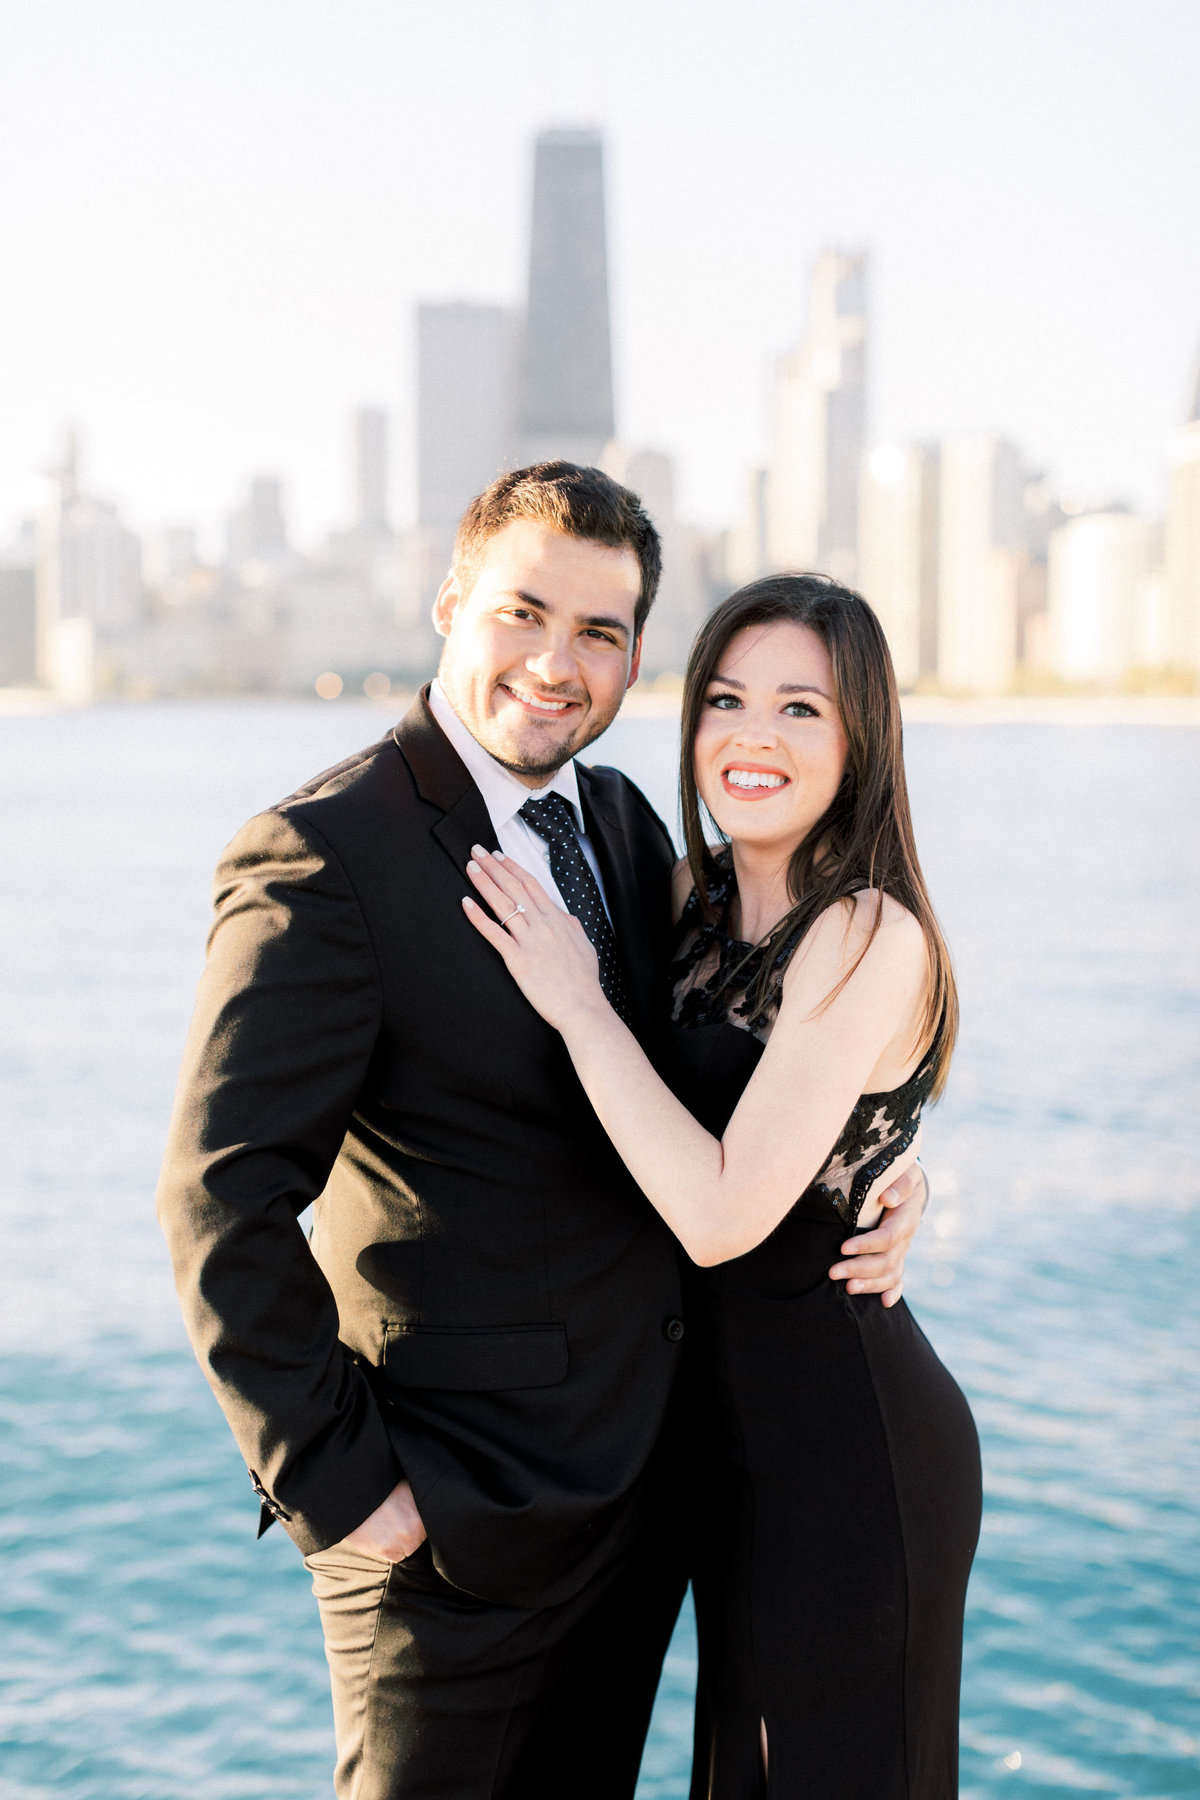 TiffaneyChildsPhotography-ChicagoWeddingPhotographer-Alana+Giancarlo-NorthAvenueBeachUnionStationEngagementSession-24